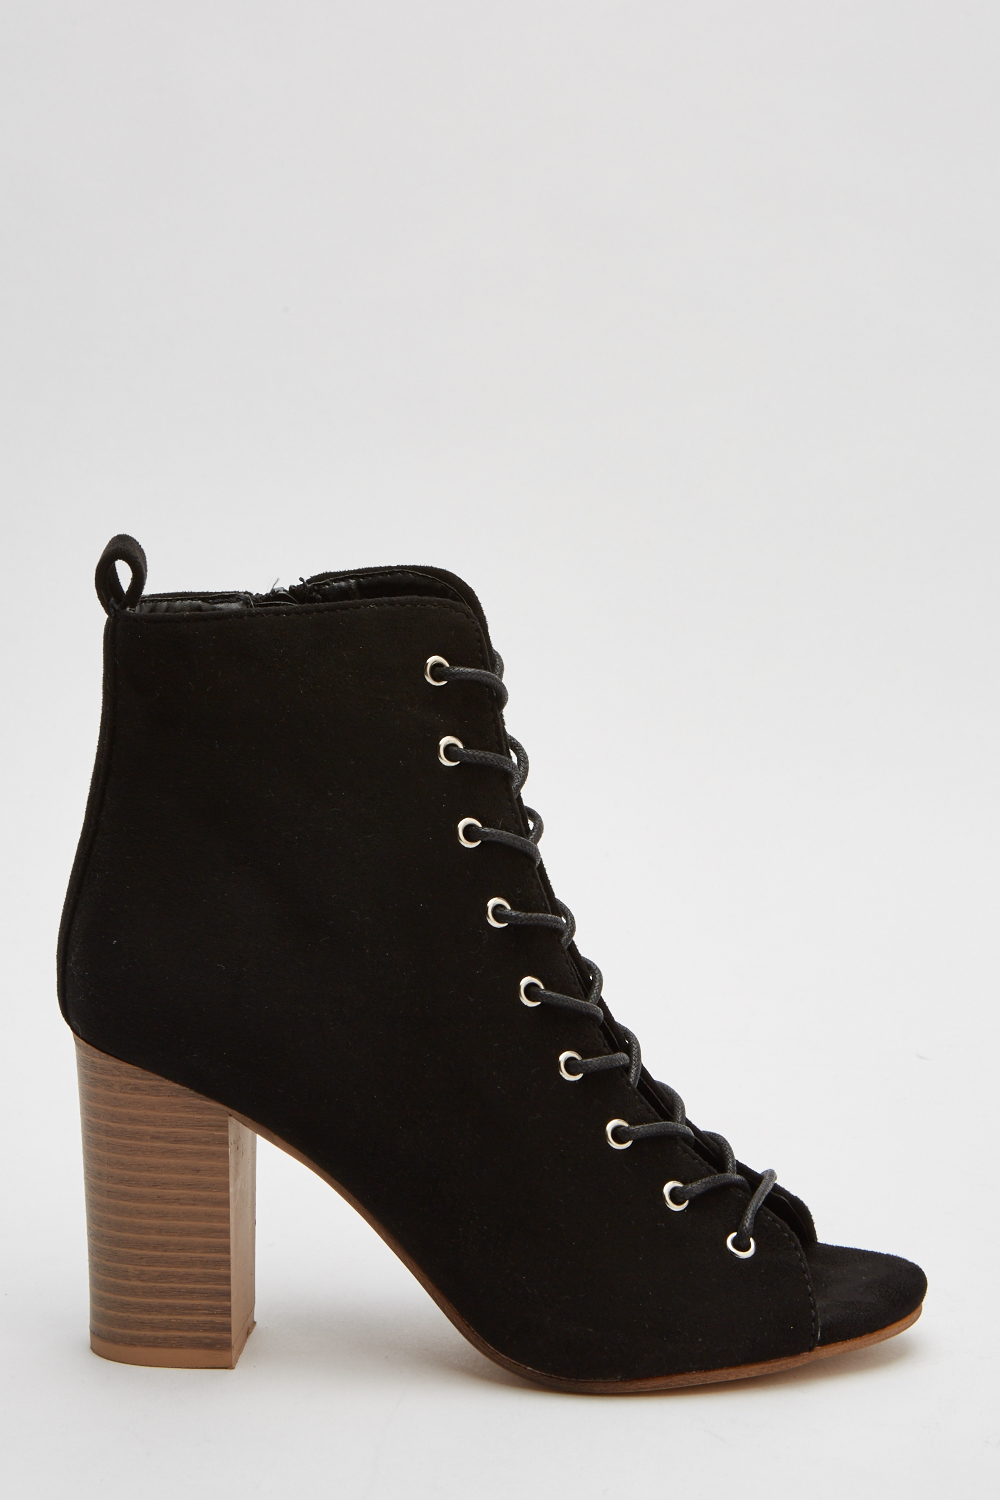 6110cdb6a8a3 Suedette Lace Up Open Toe Block Heels. Click on the image to zoom